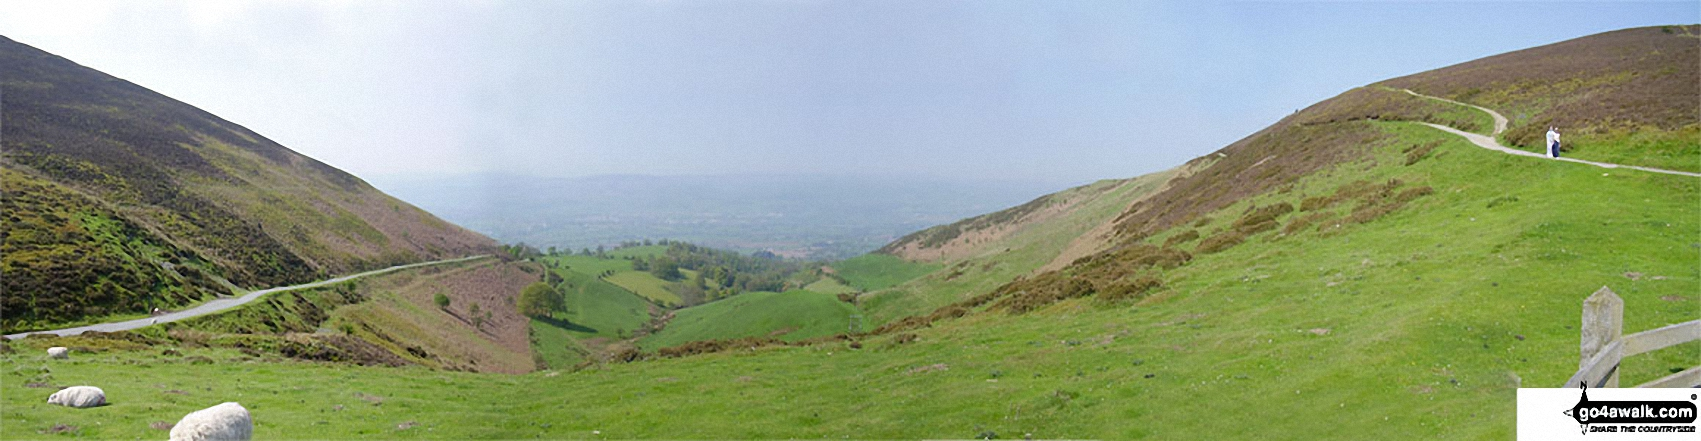 Looking South West towards Snowdonia from<br>The Offa's Dyke Path at Bwlch Penbarras